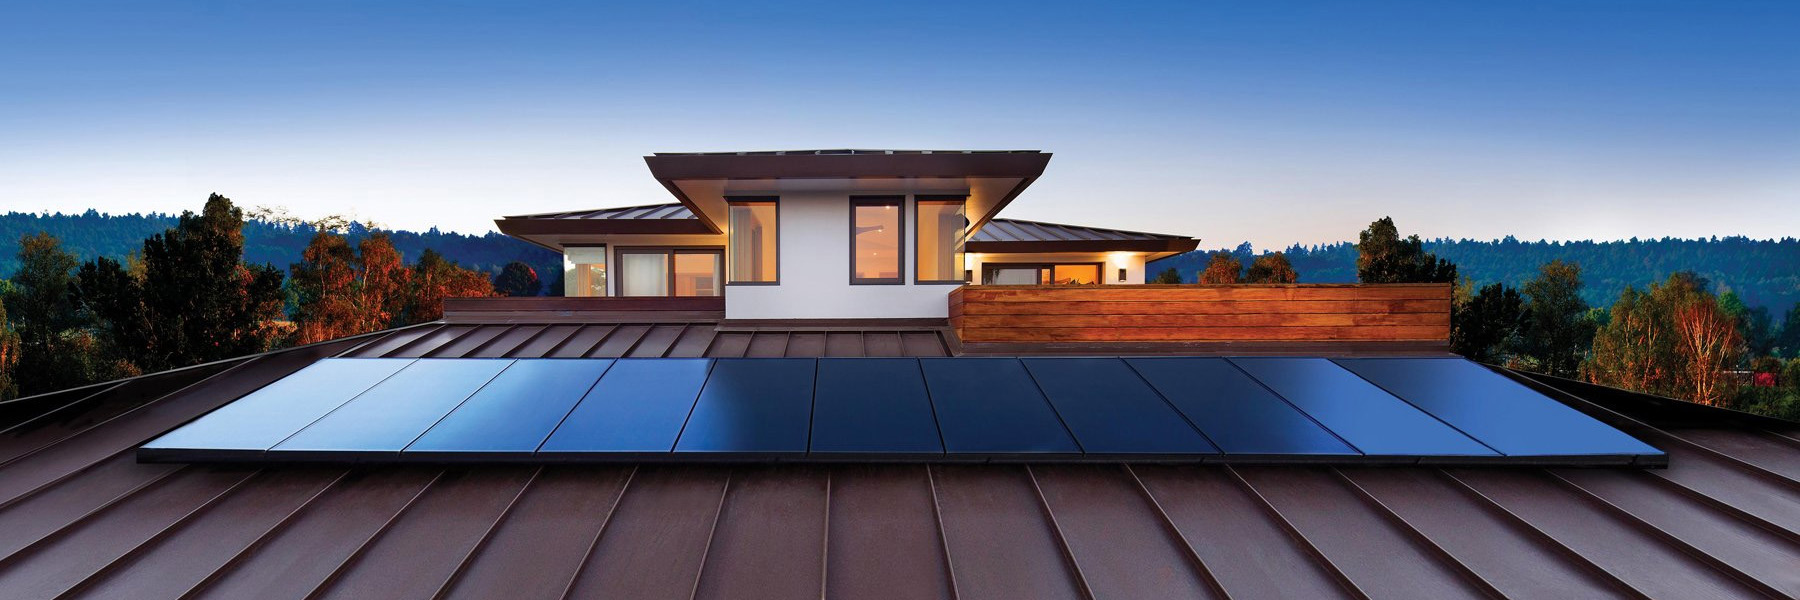 Why Choose SunPower? |